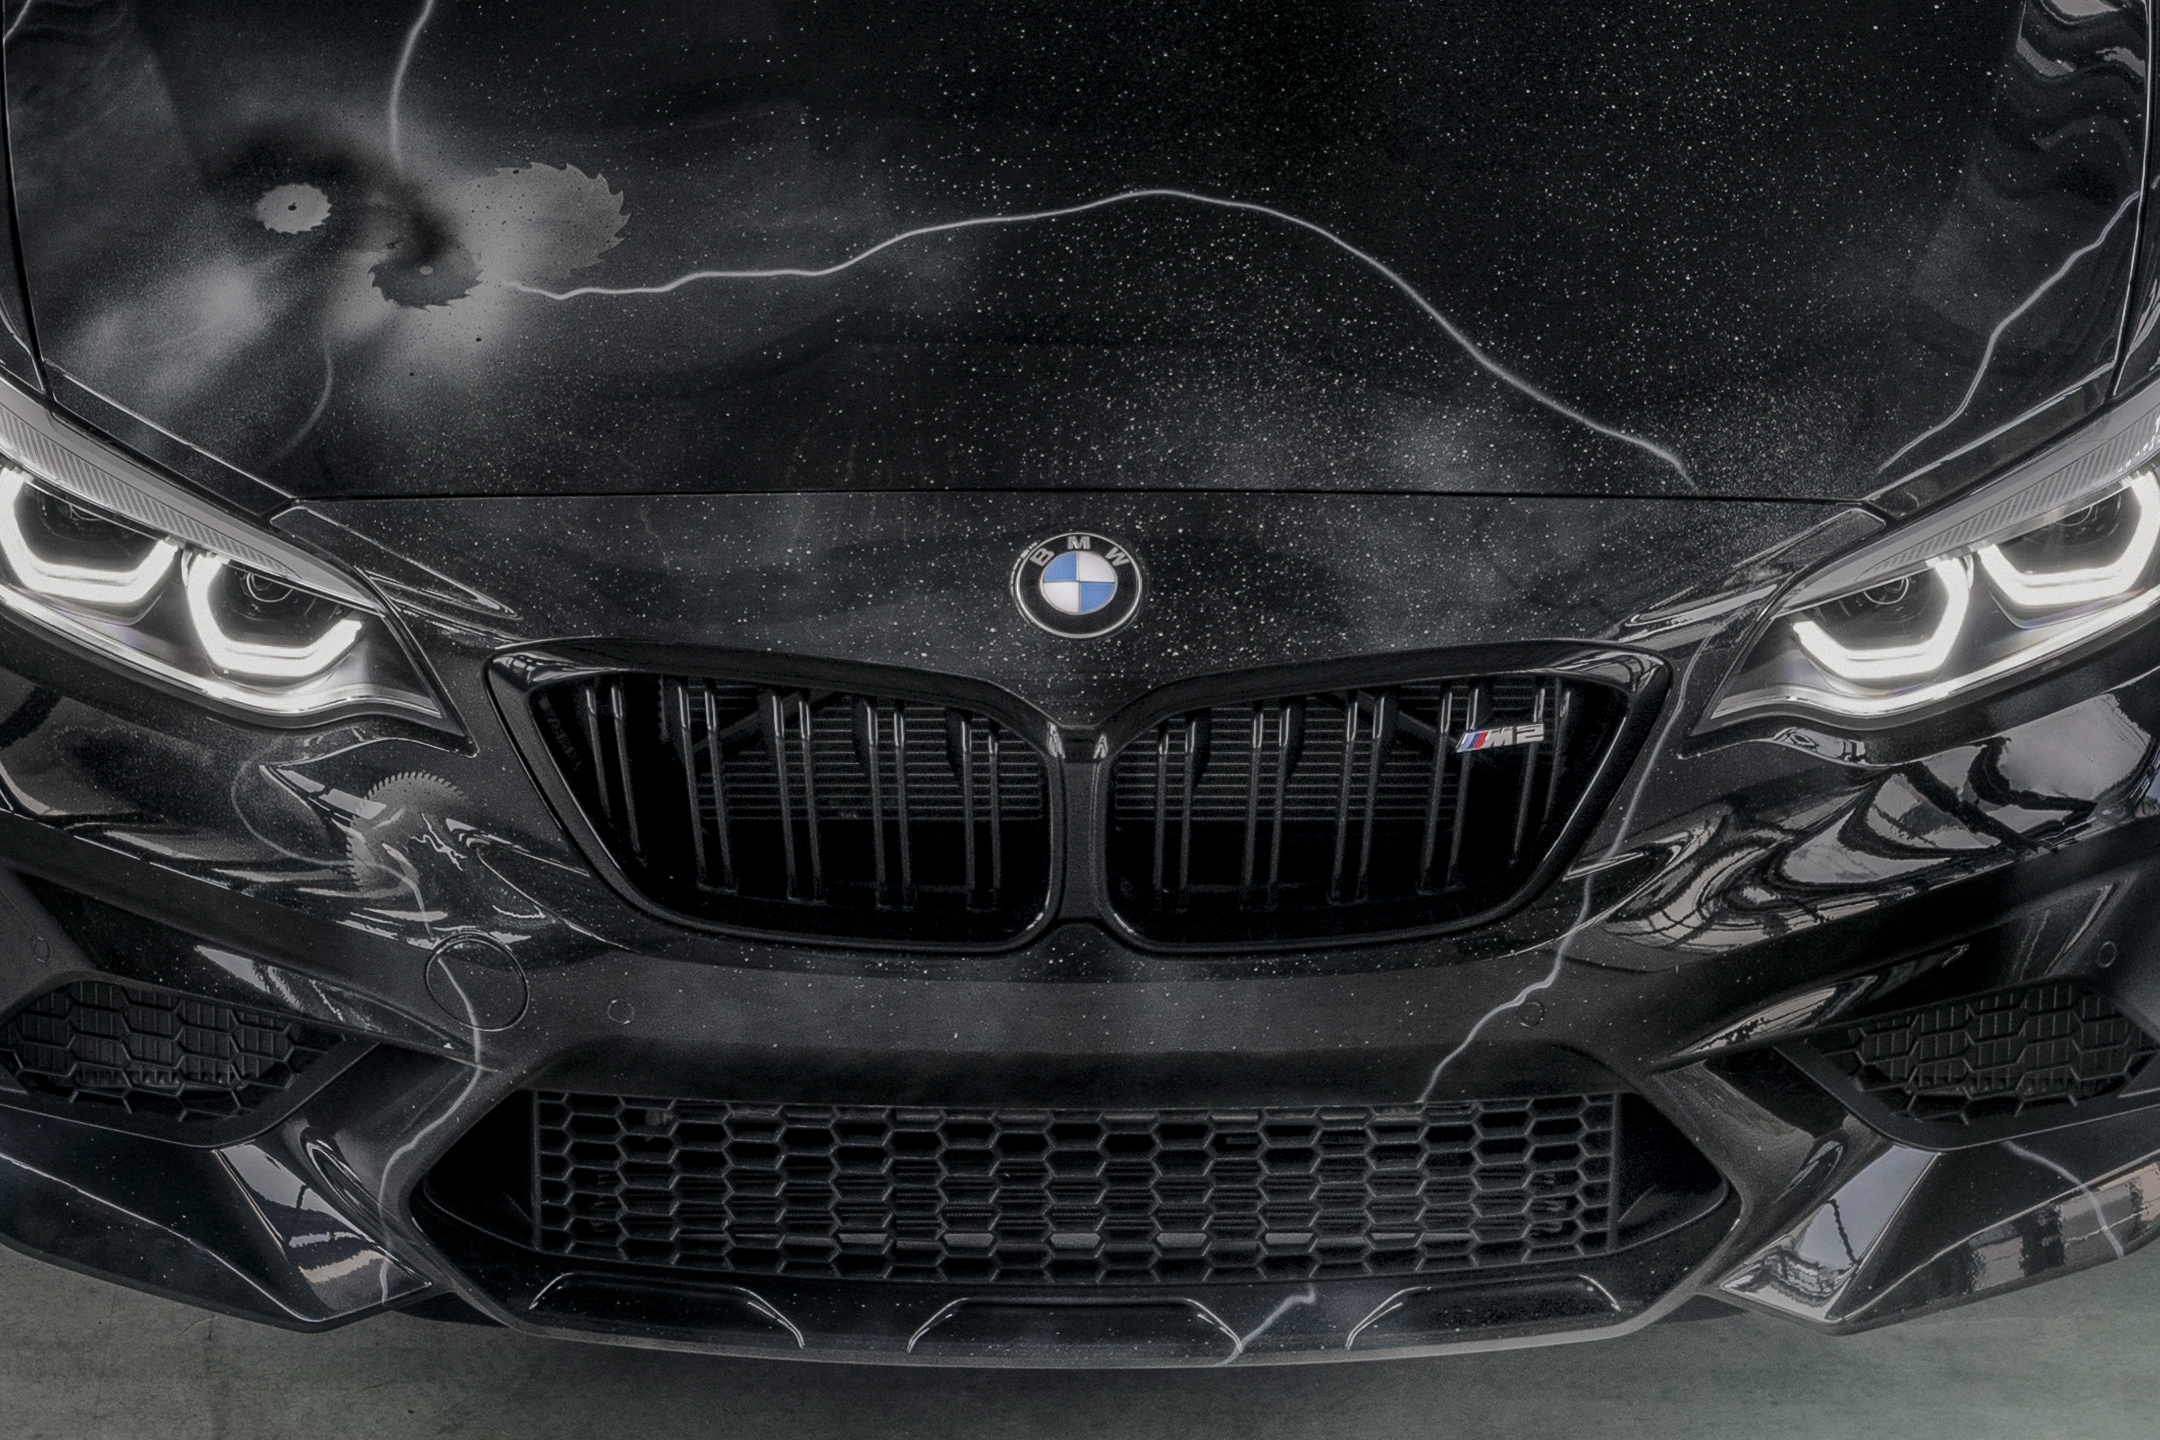 BMW M2 by FUTURA 2000 - Street Art Car - 2020 - front hood / capot avant - radiator grille / calandre - logo BMW - M2